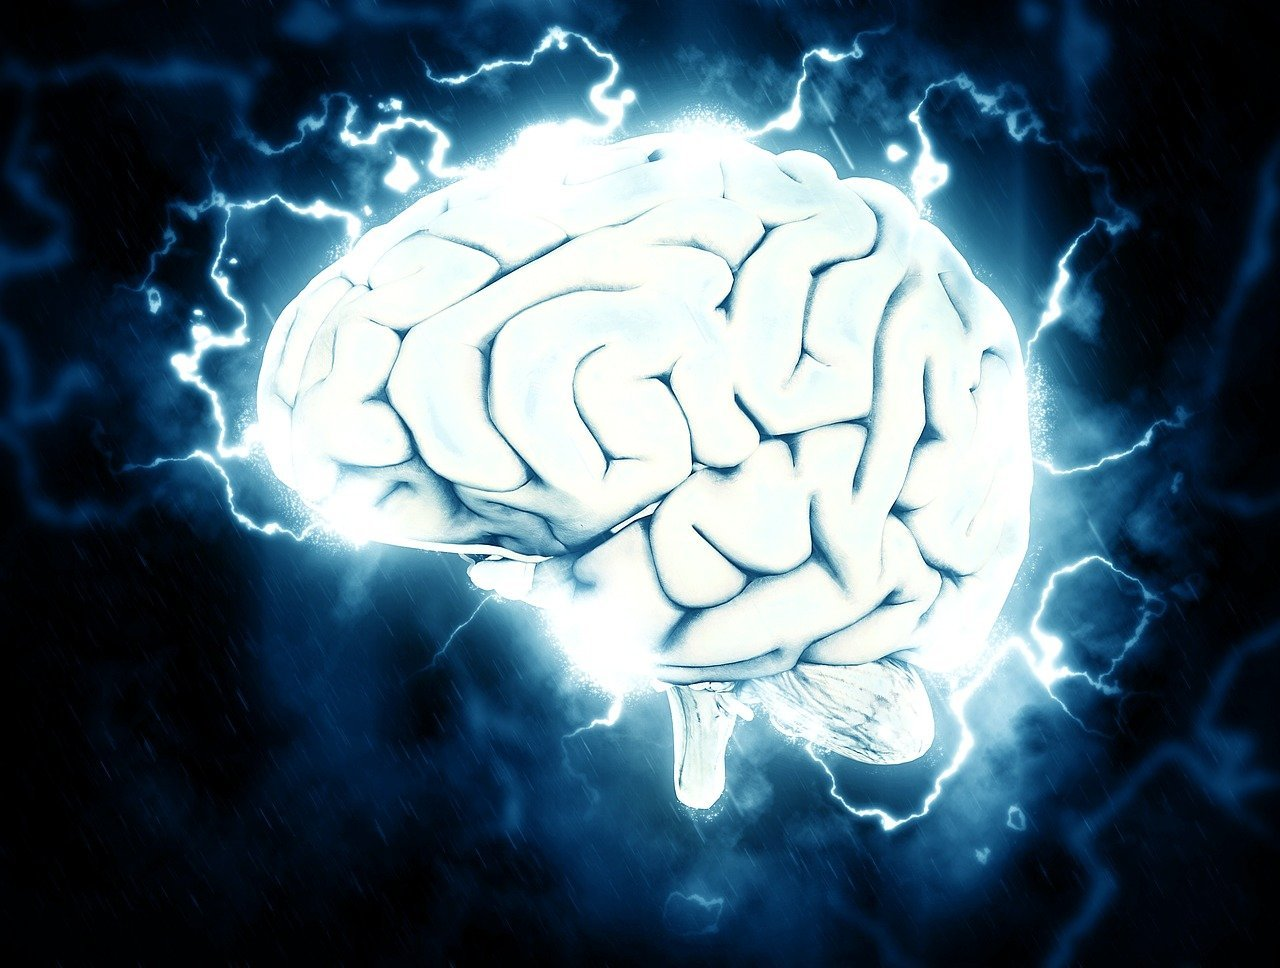 An image of an electrified brain   Photo: Pixabay/Pete Linforth